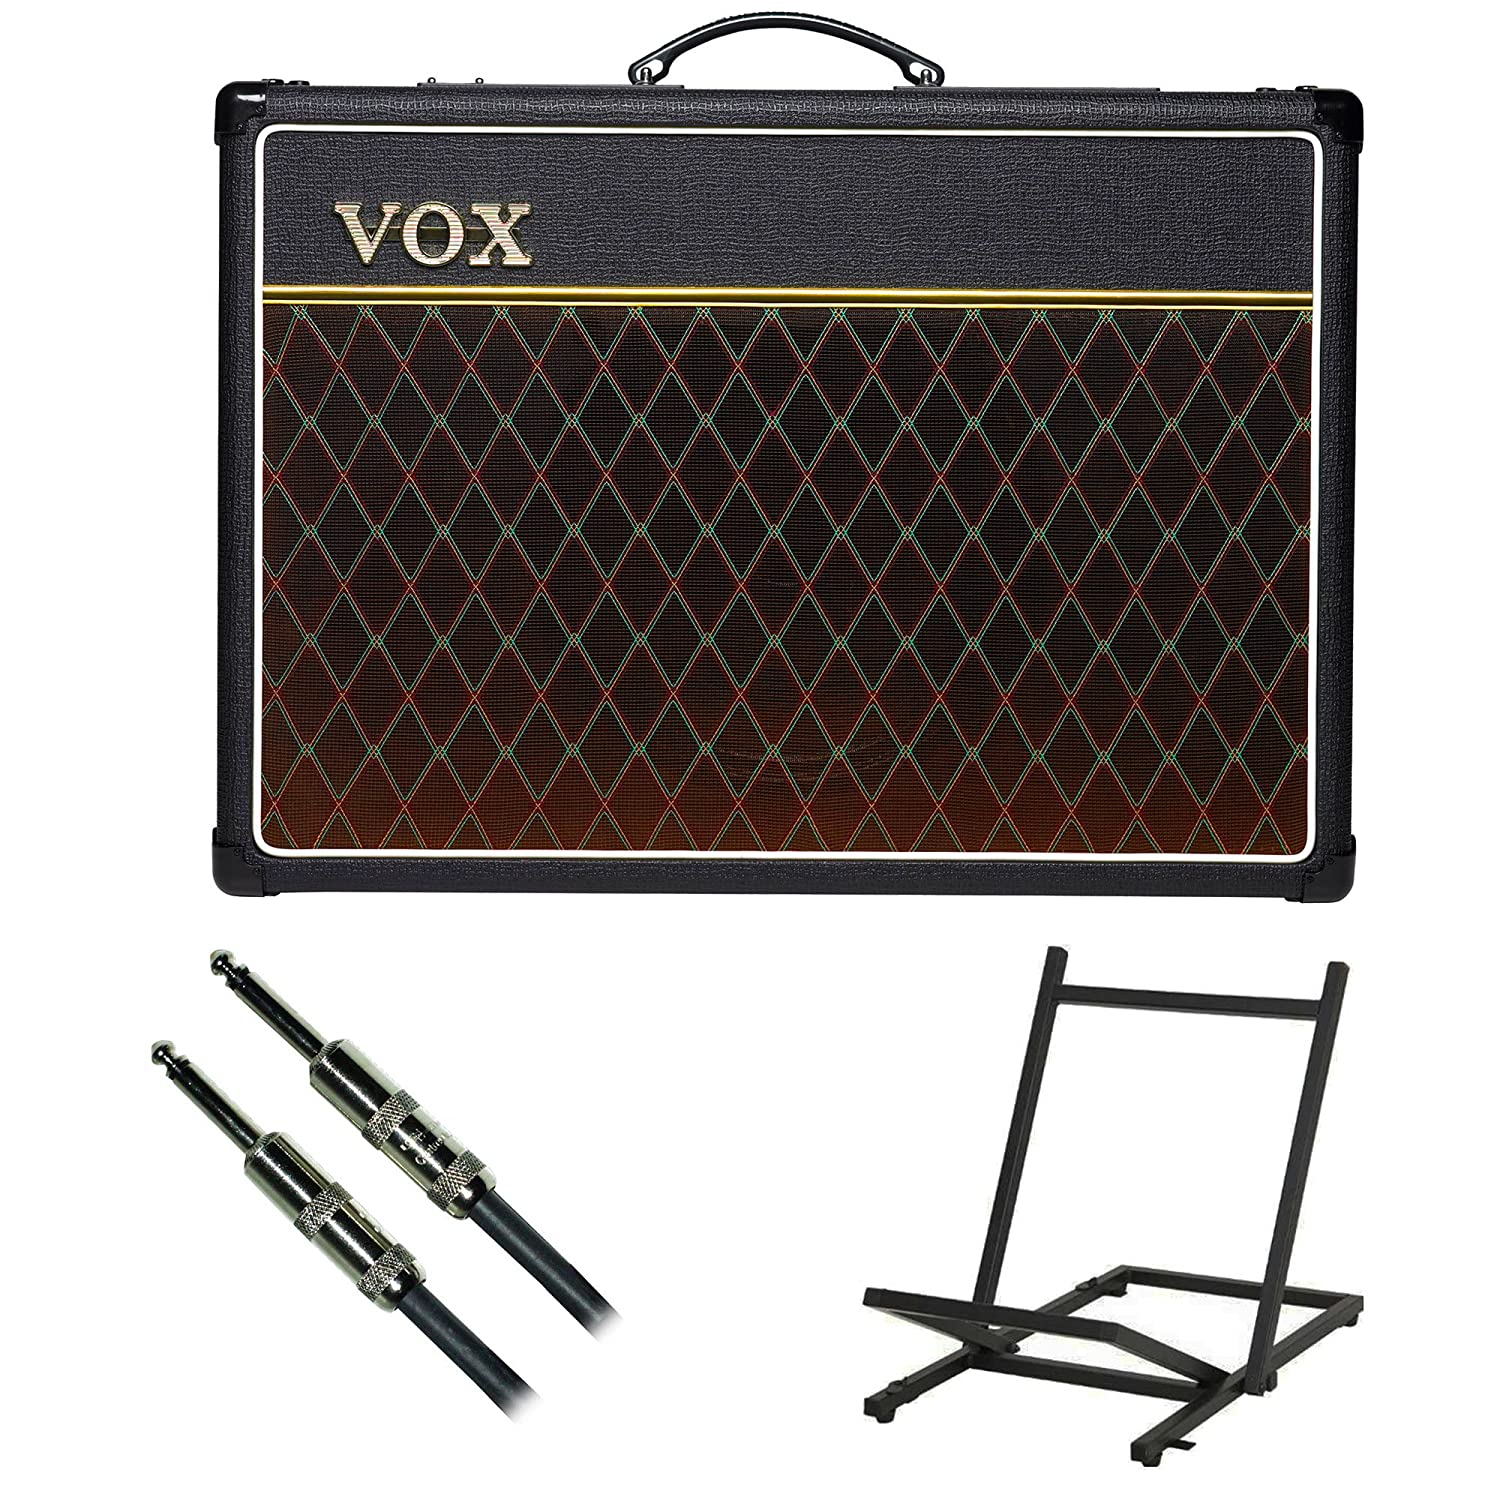 Vox Ac15c1 Guitar Combo Amplifier With On Stage Tilt Back Amp Stand